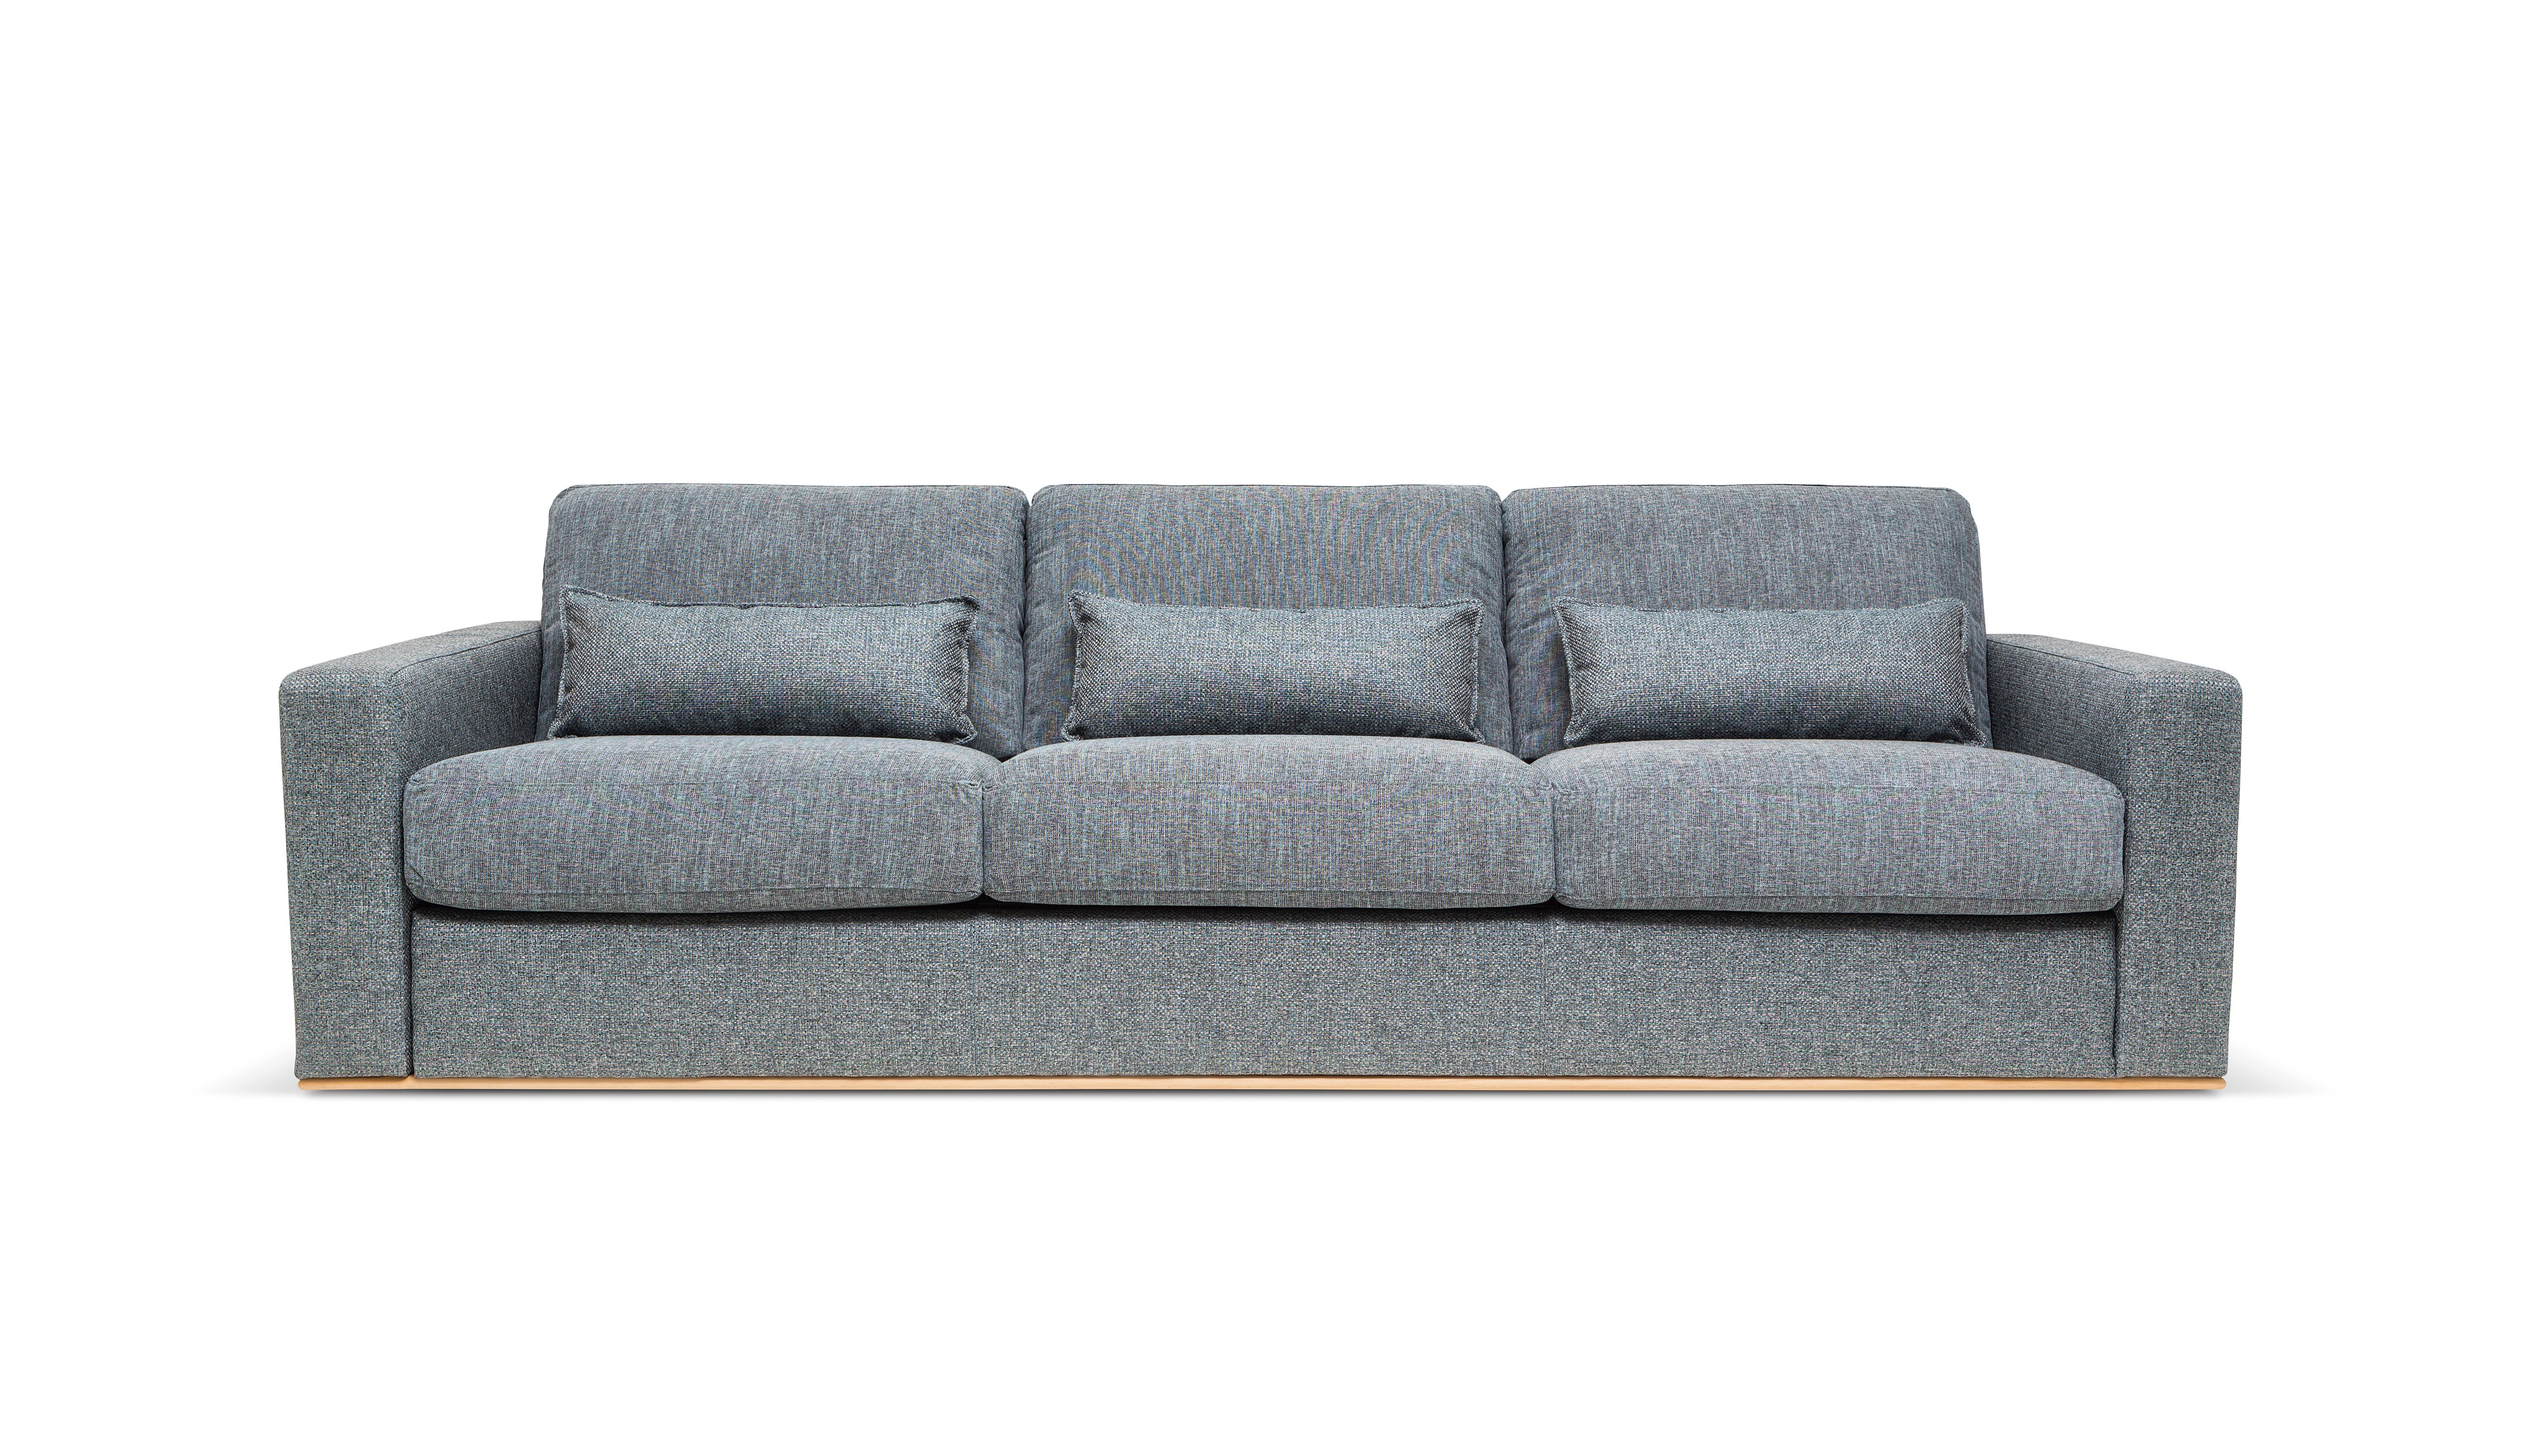 American Sofas - emphasis on practicality and comfort